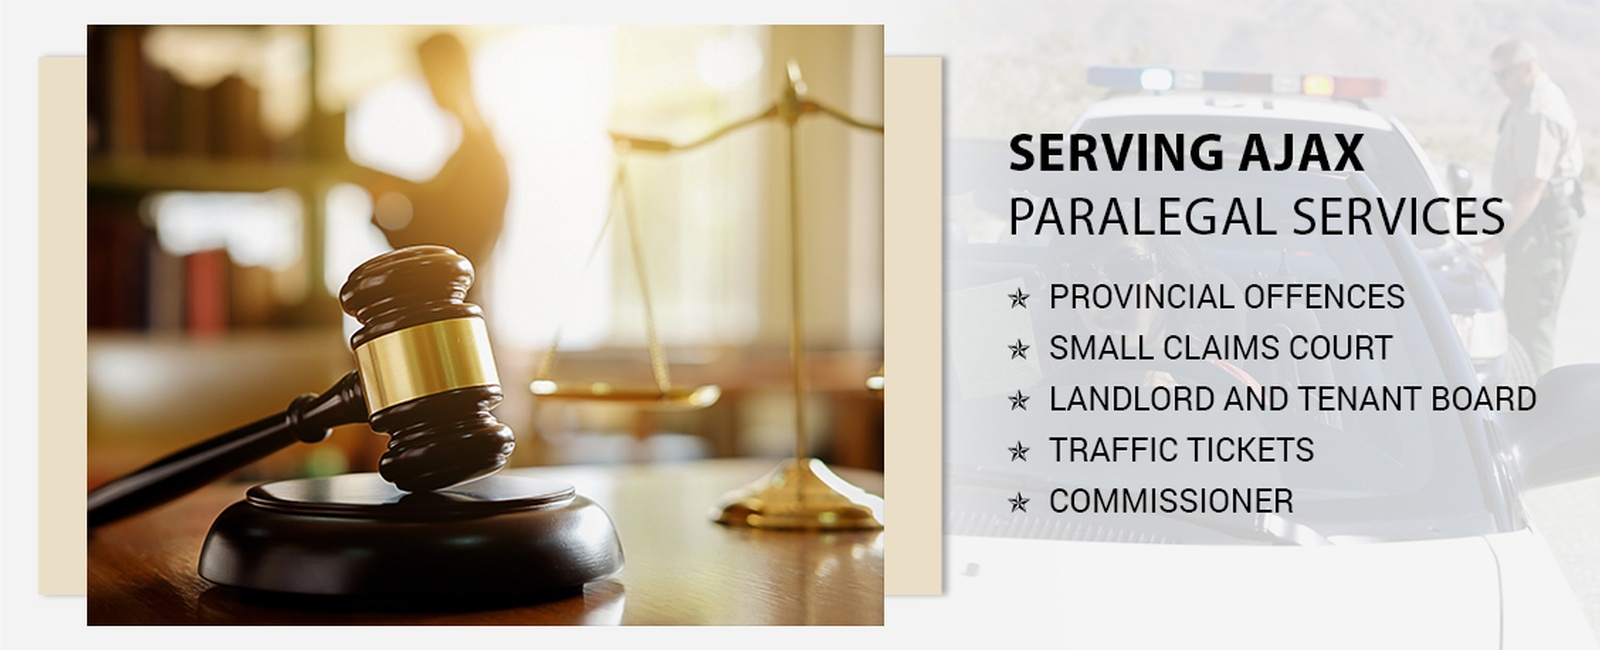 Paralegal services in Ajax